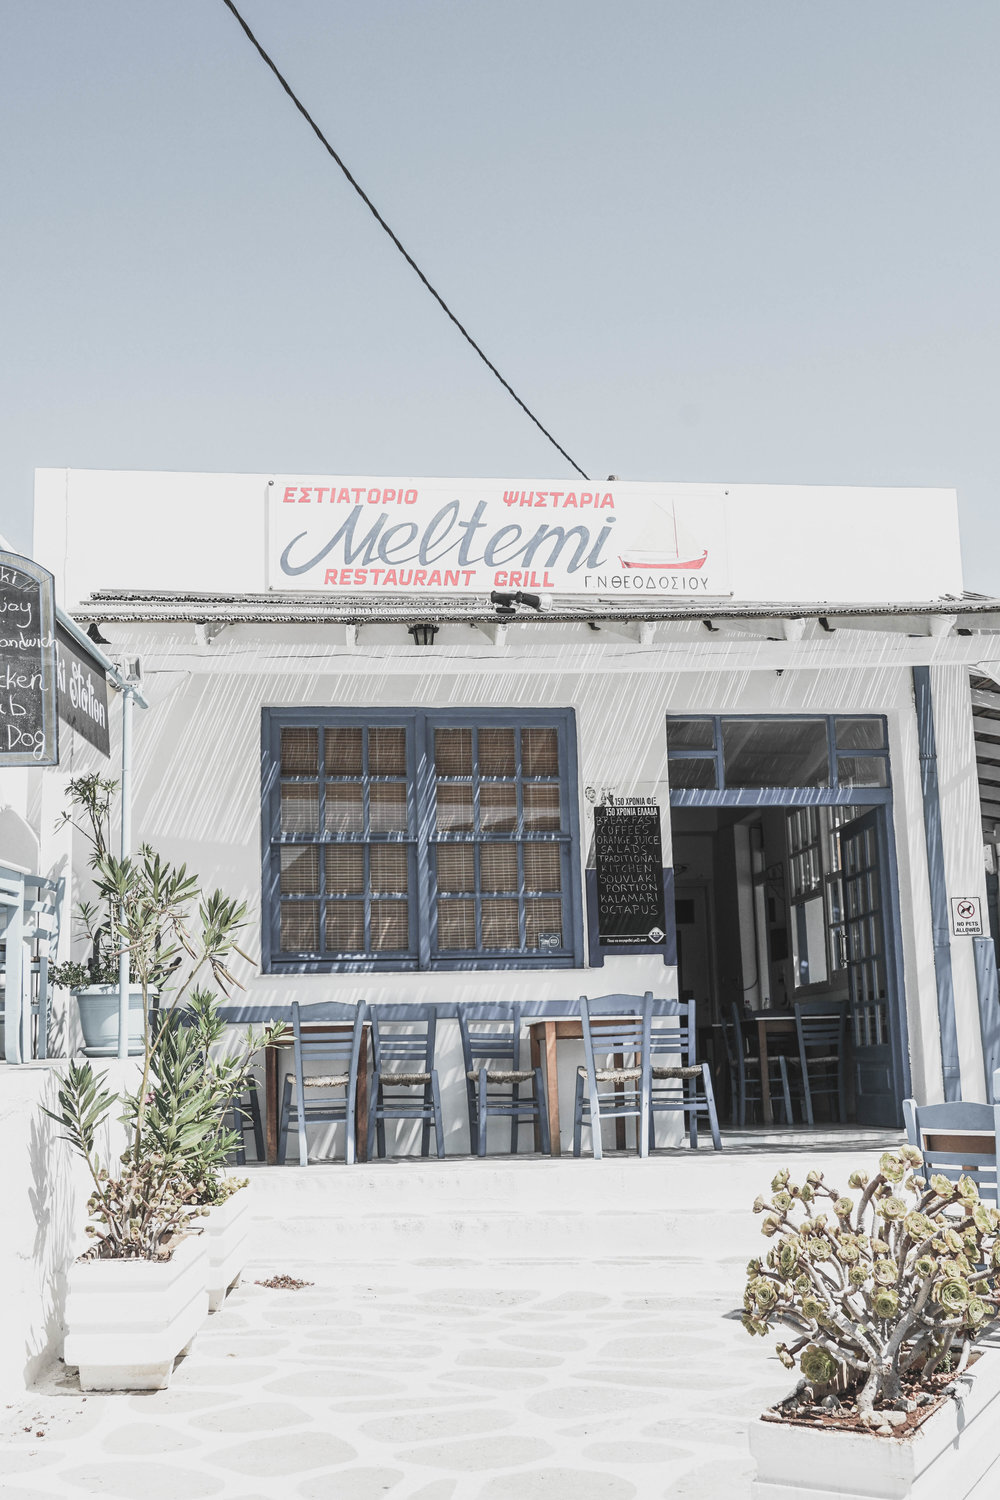 One of my favorite things about Folegandros was the hand-painted signs. Every restaurant and shop seemed to have one.